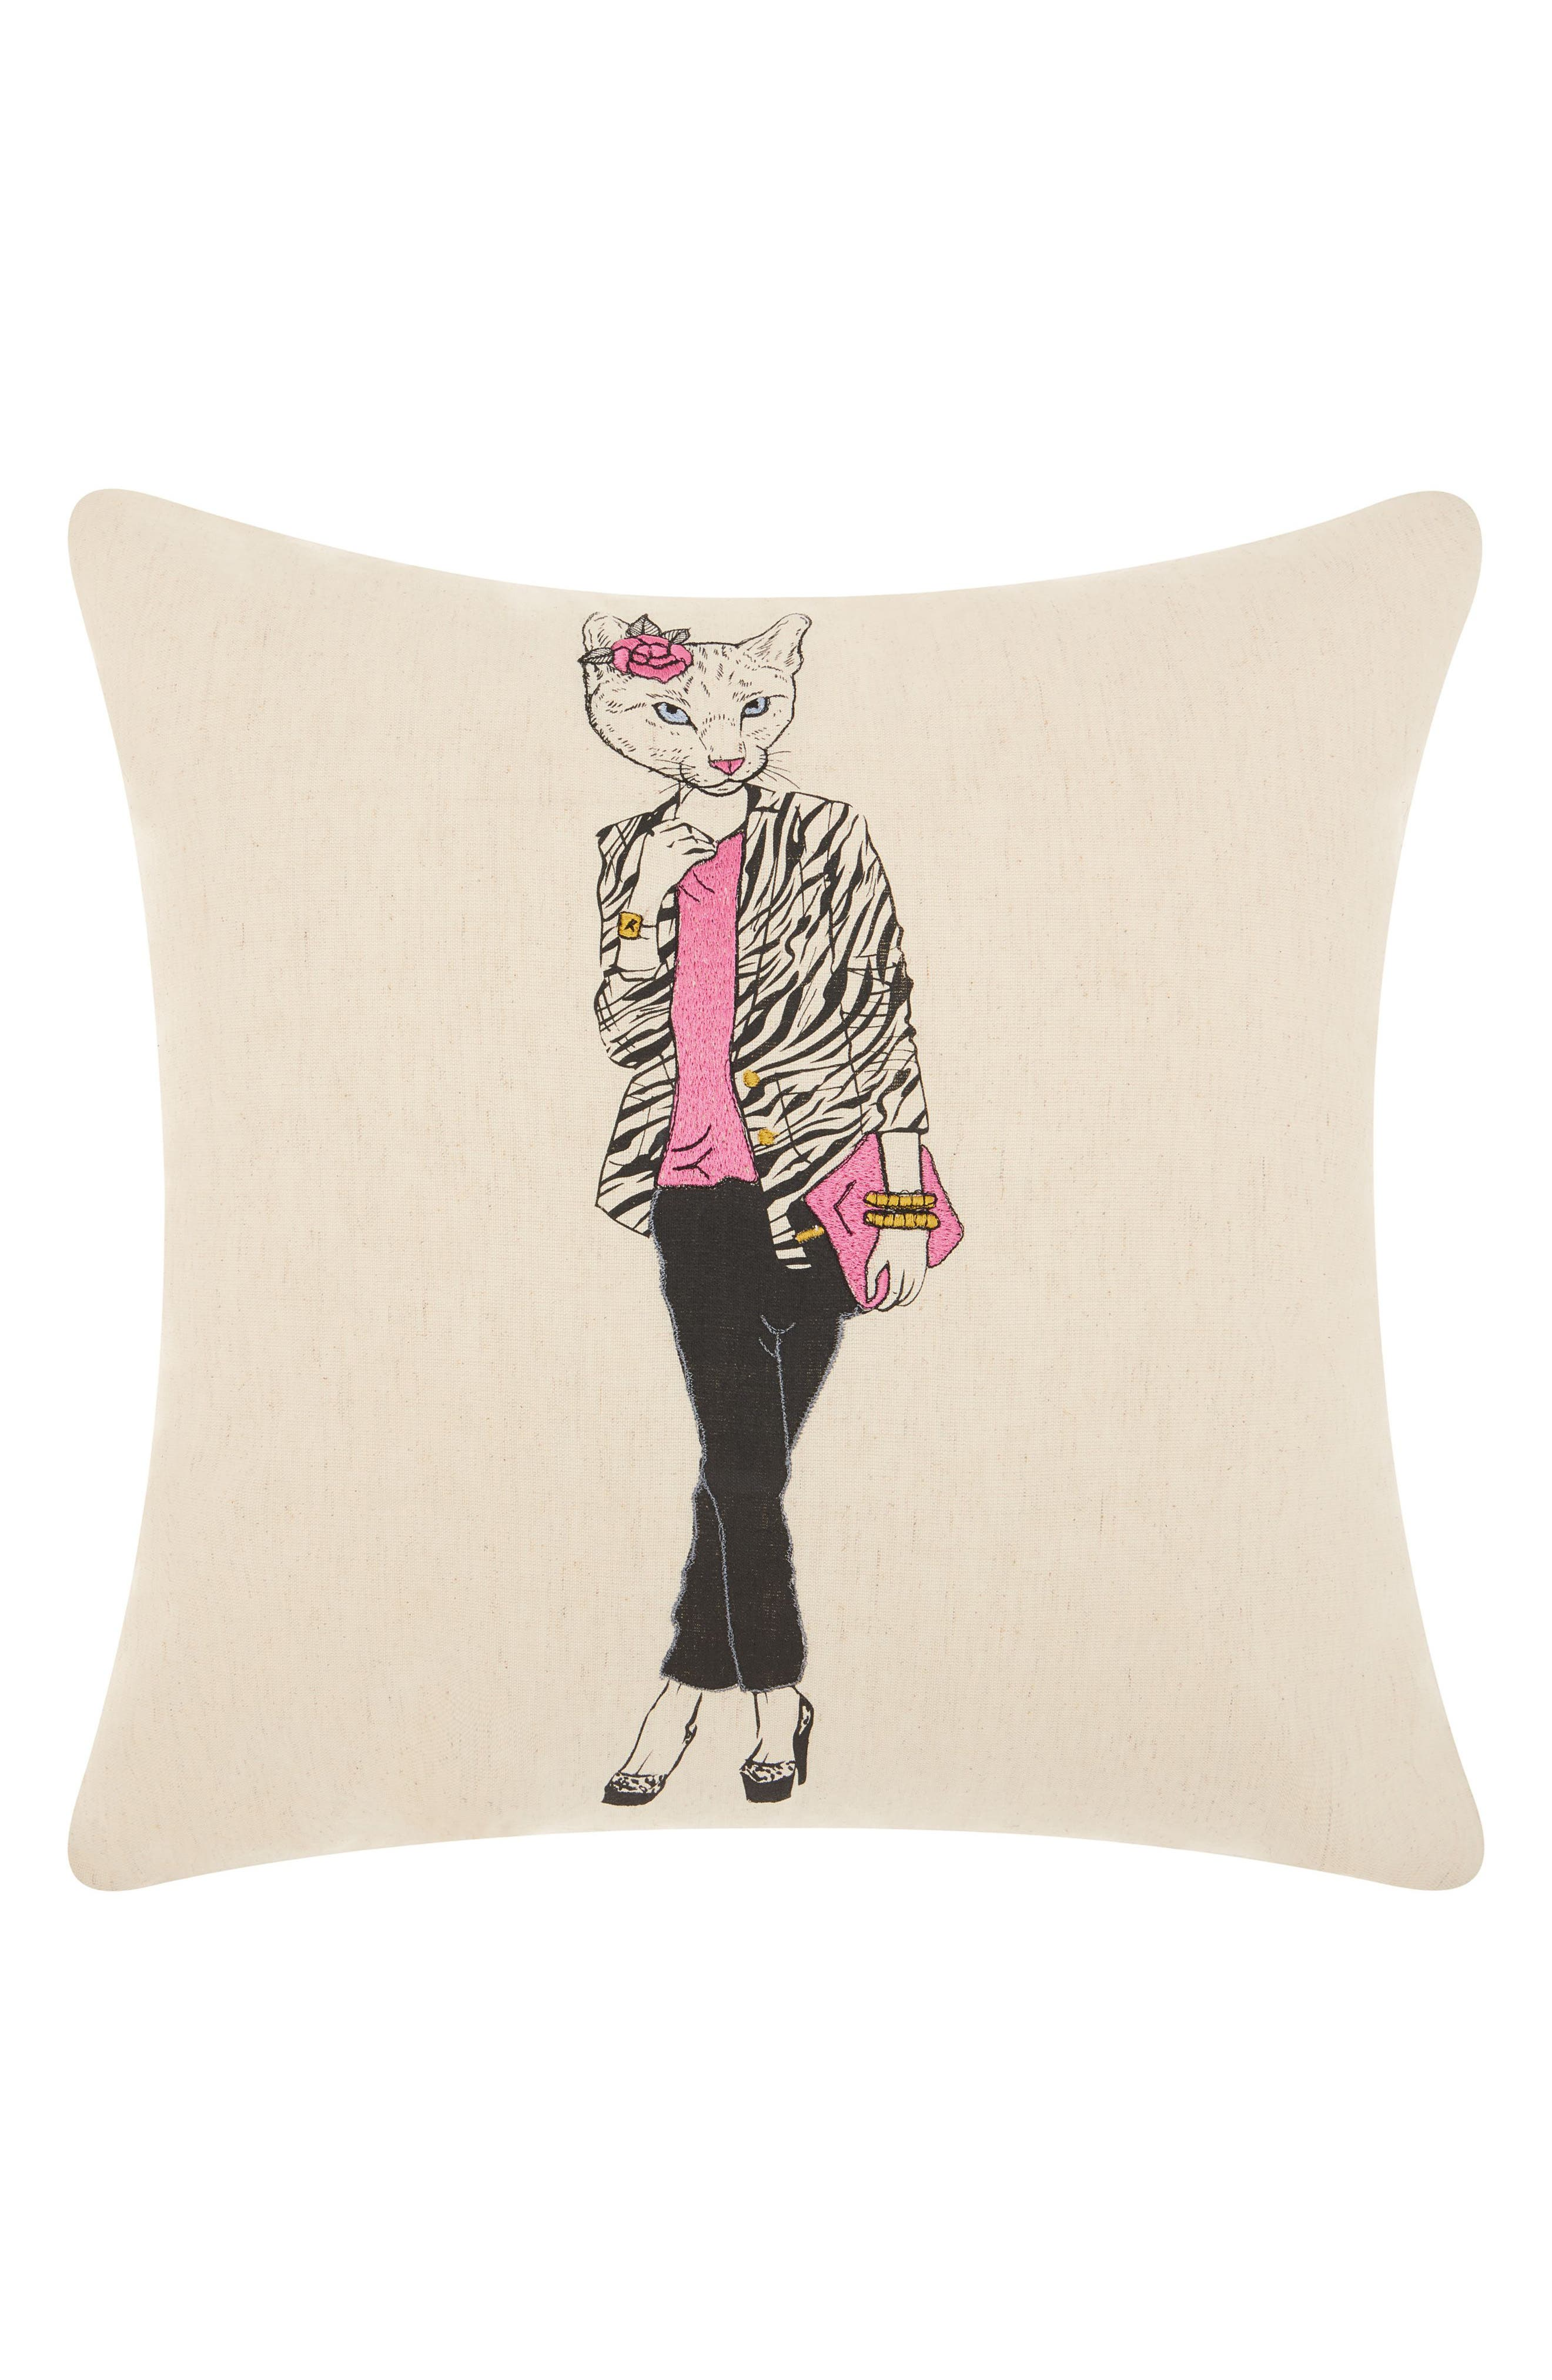 Classy Kitty Accent Pillow,                         Main,                         color, 250